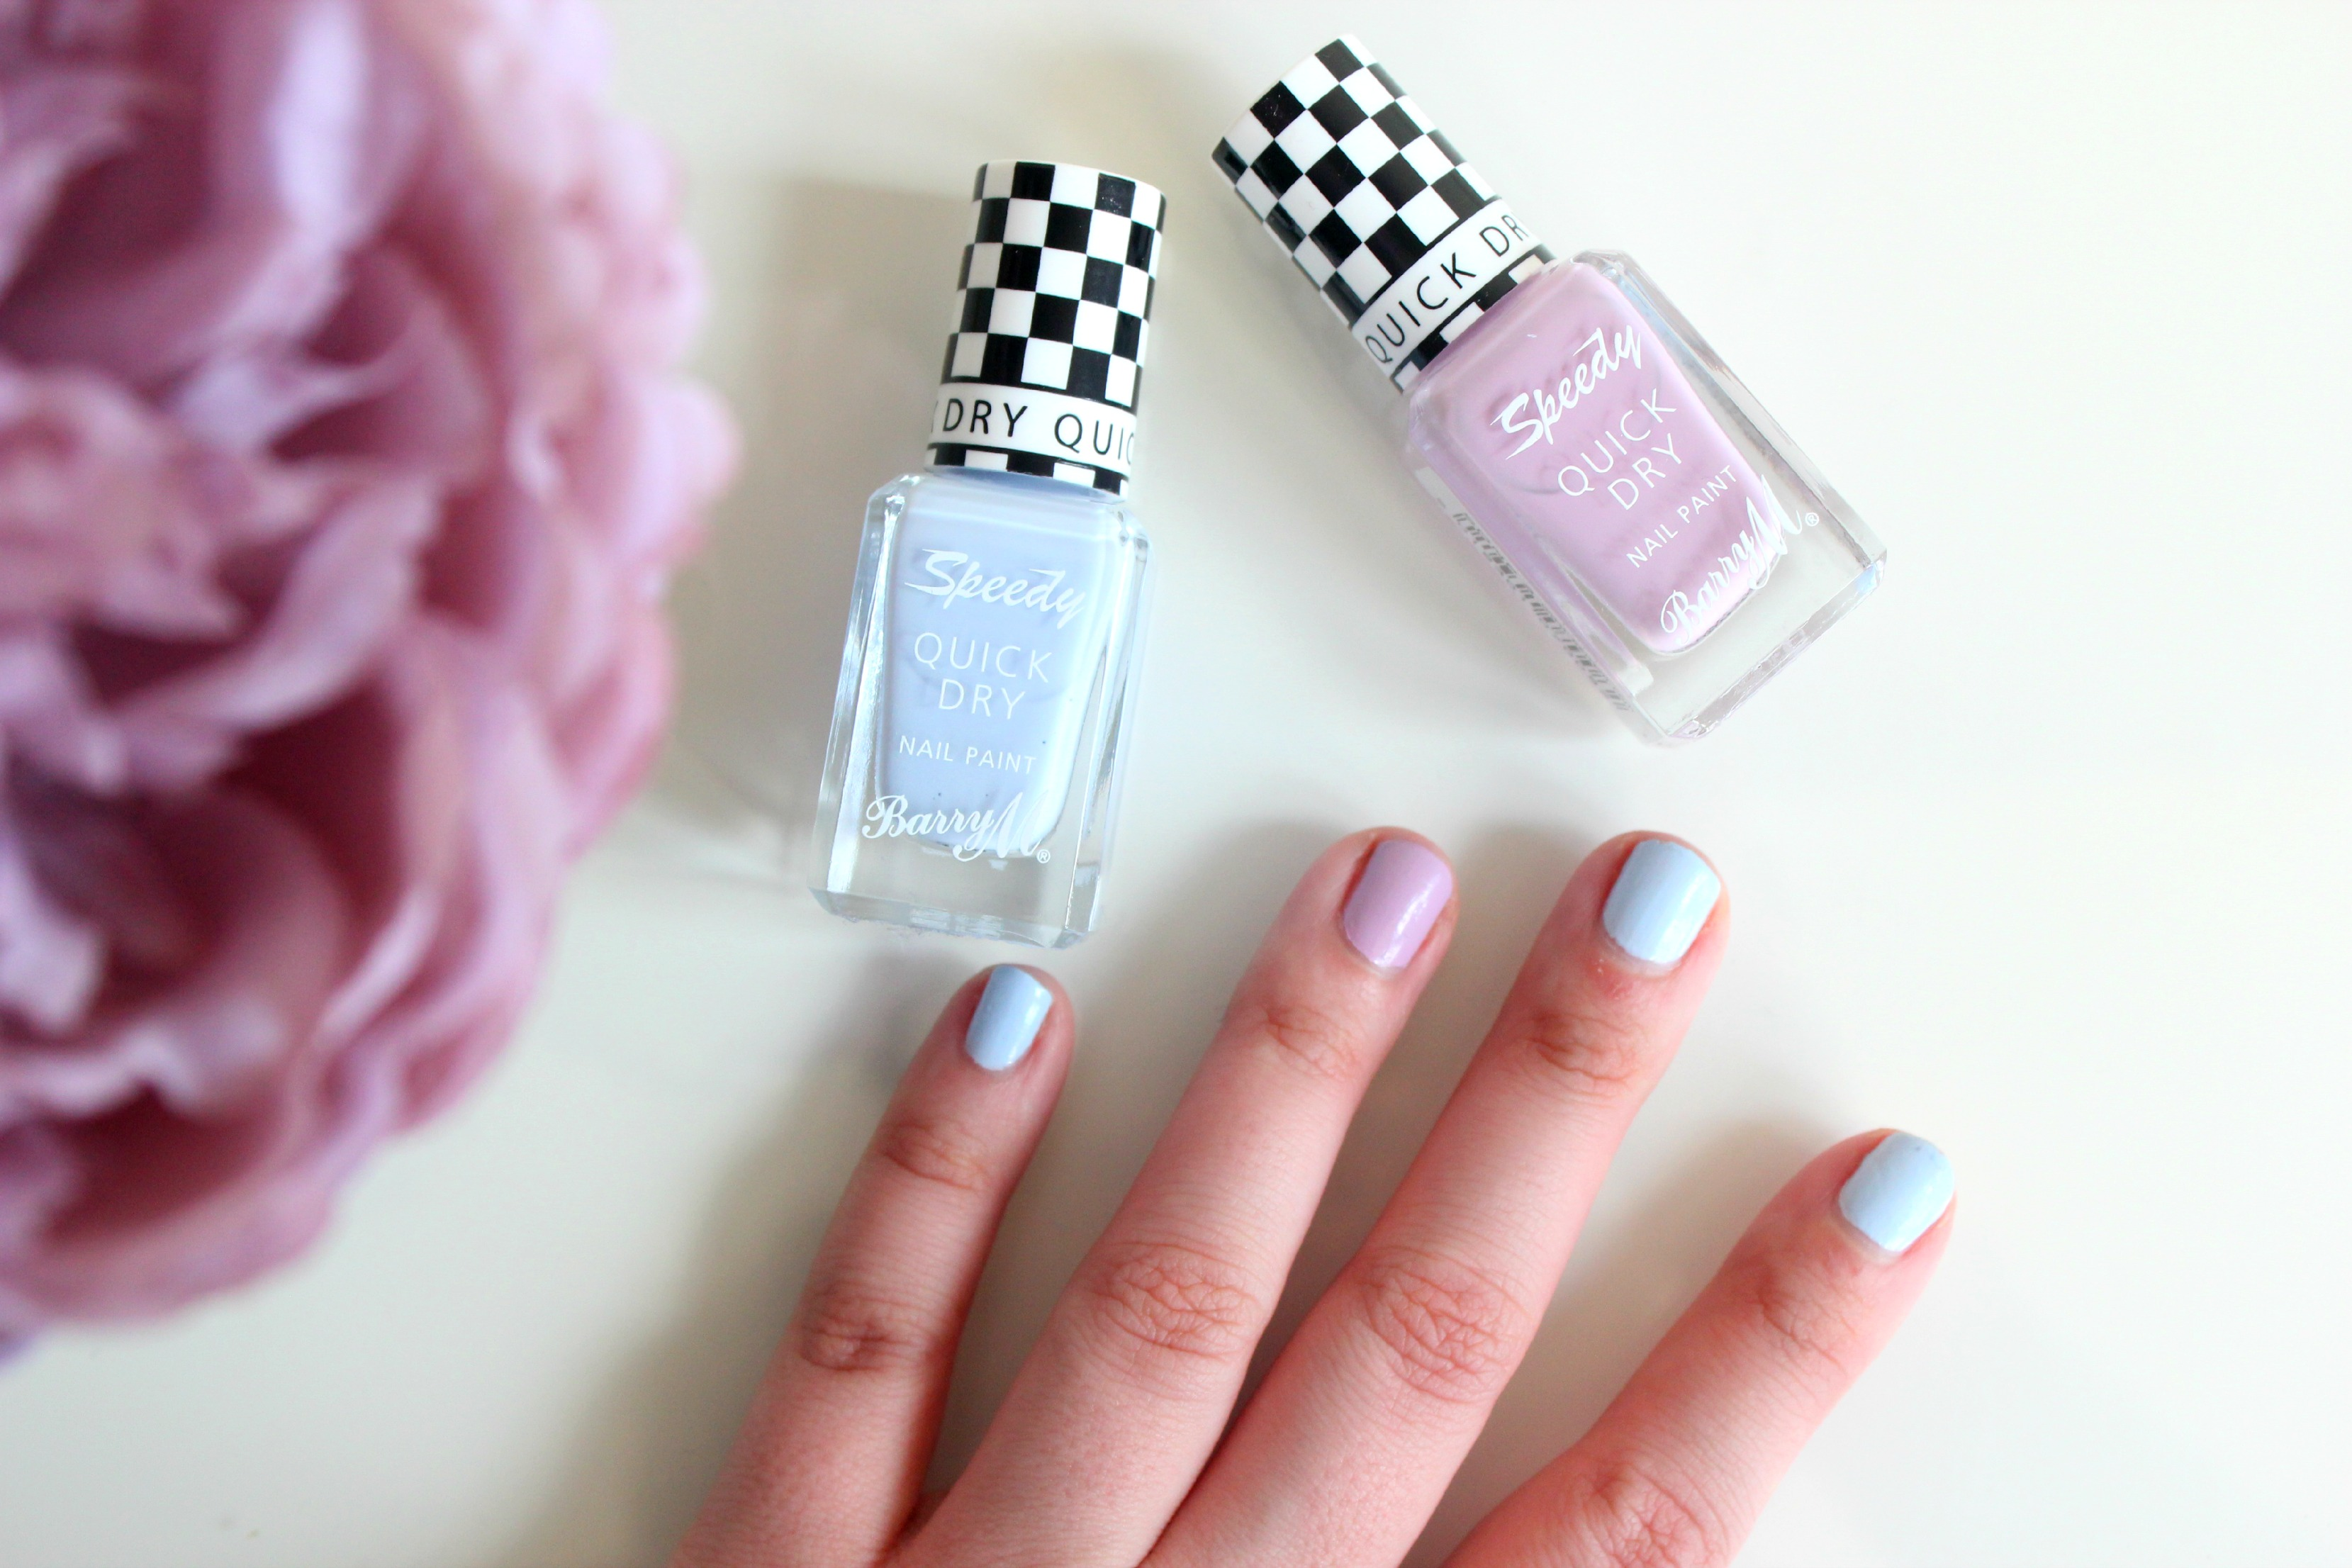 Barry M Speedy Quick Dry Nail Paint | Merry Musing